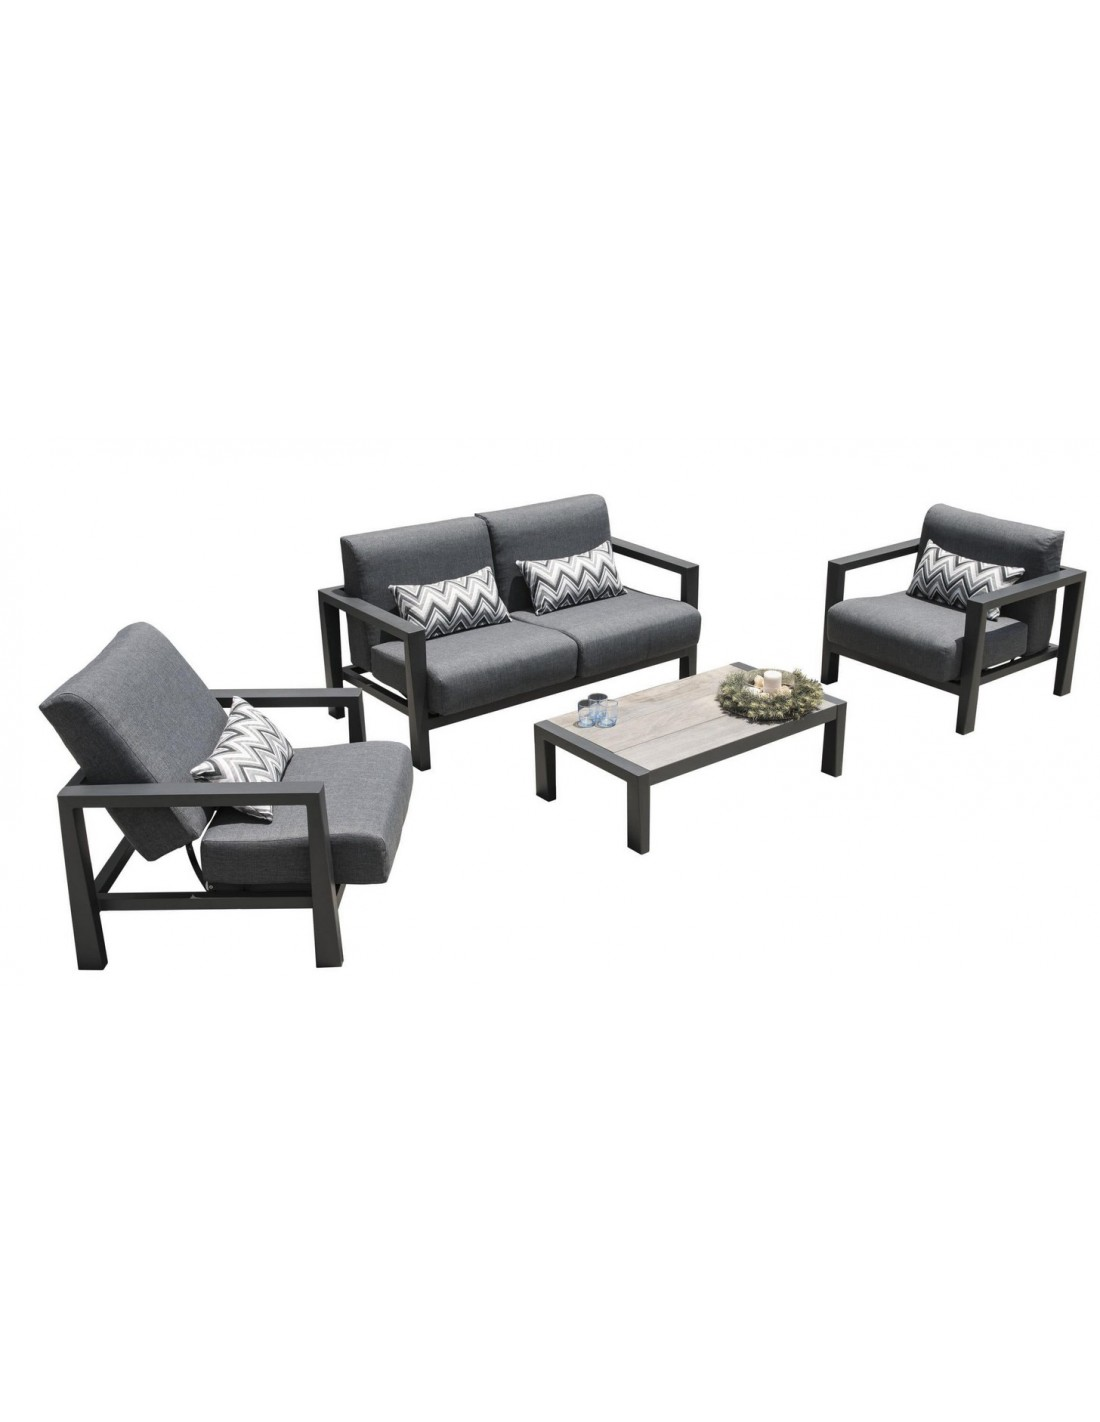 canap 2 places koi aluminium gris espace coussins grafito les jardins. Black Bedroom Furniture Sets. Home Design Ideas